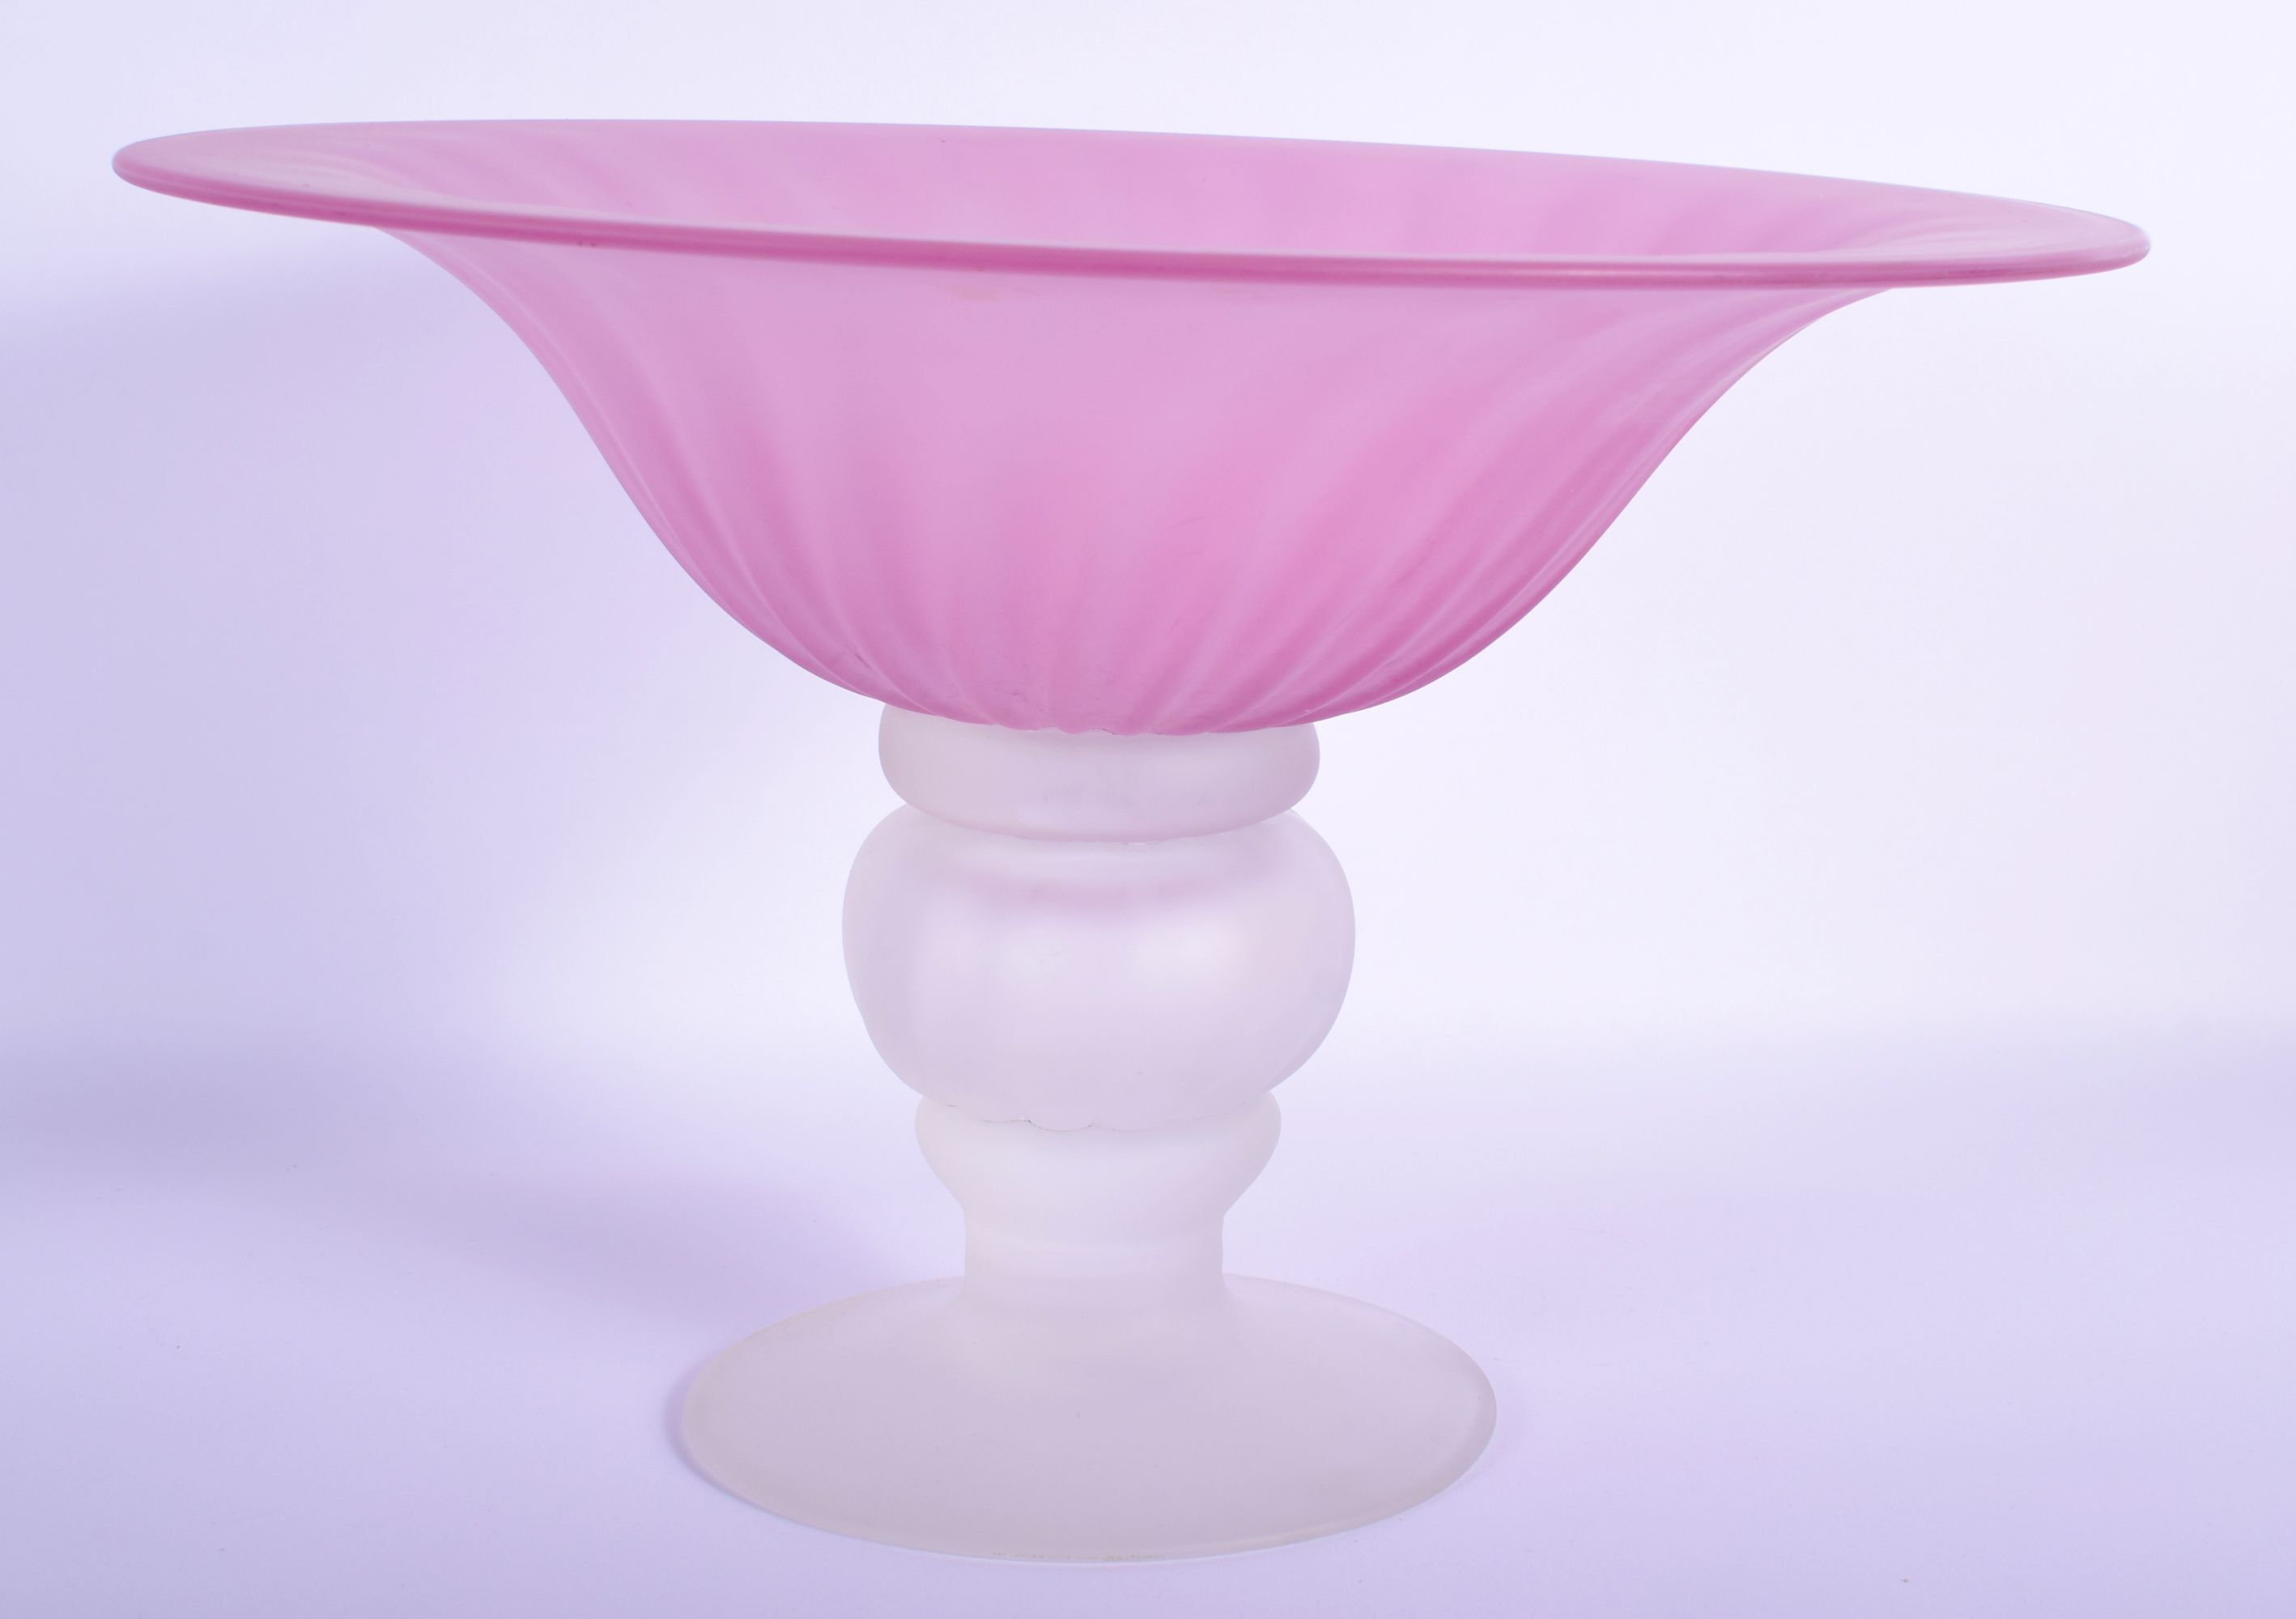 A RARE THOMAS GOODE & CO FROSTED PINK AND CLEAR COMPORT LA Studios, with wrythen moulded bodies. 28 - Image 2 of 5